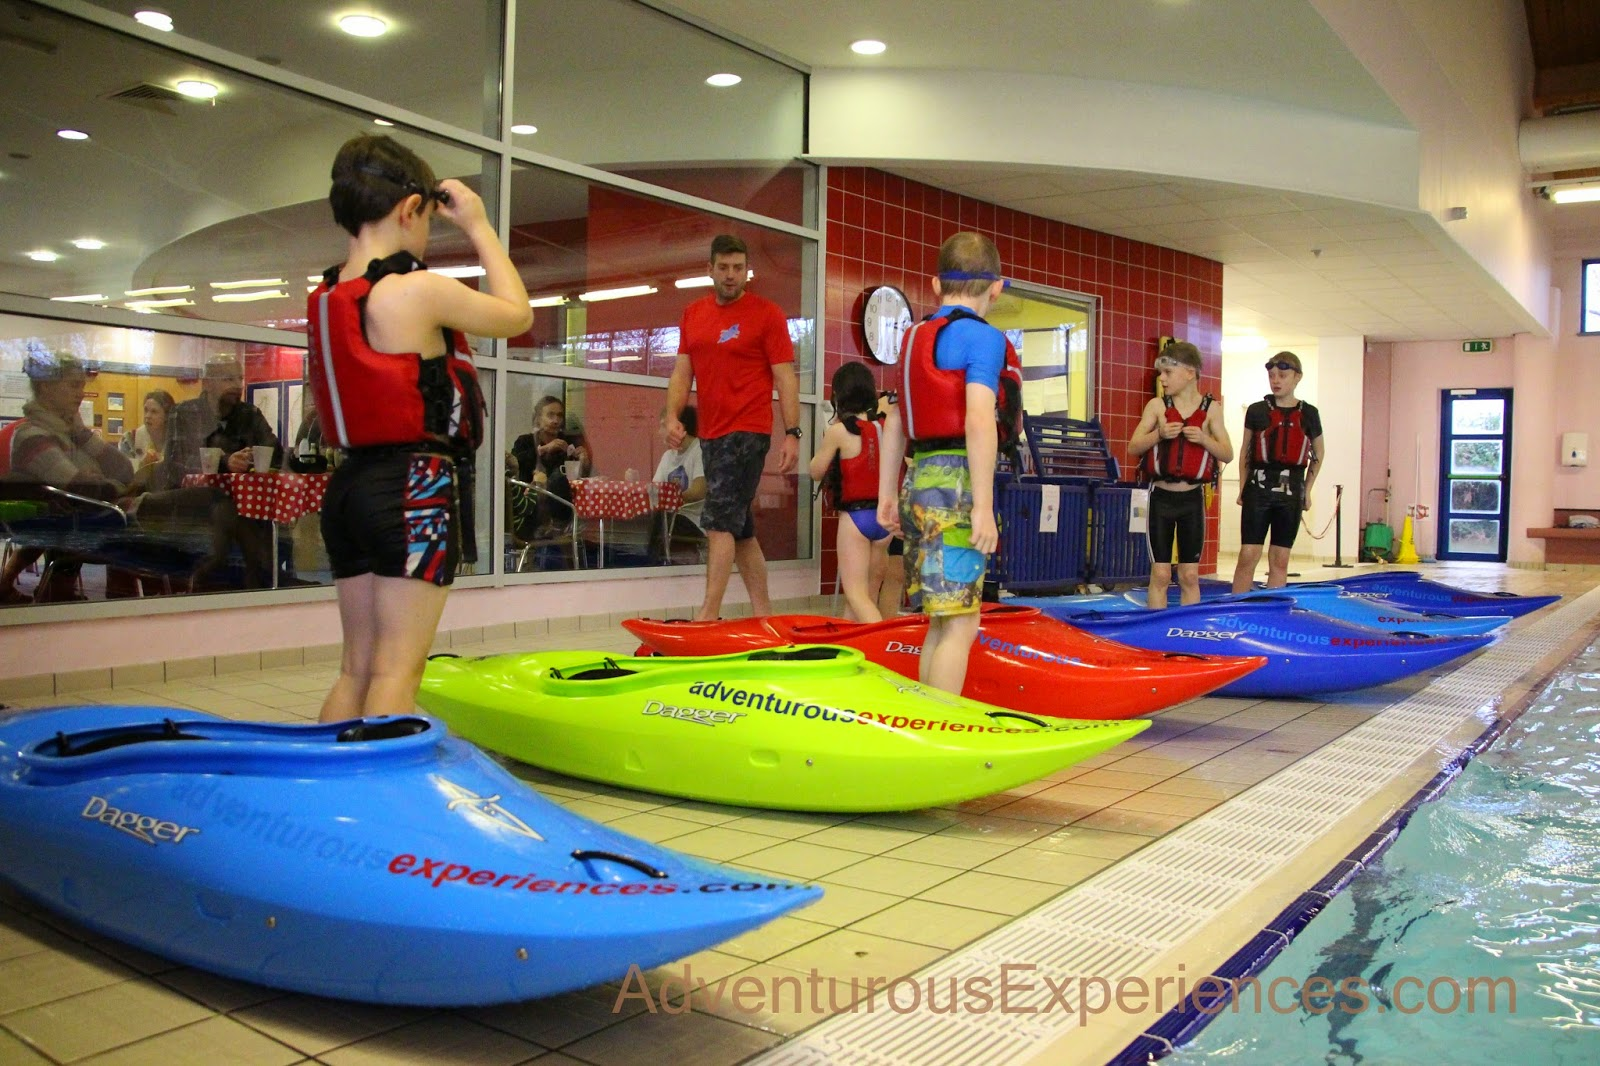 Adventurous experiences blog indoor kayaking for Western pool show 2015